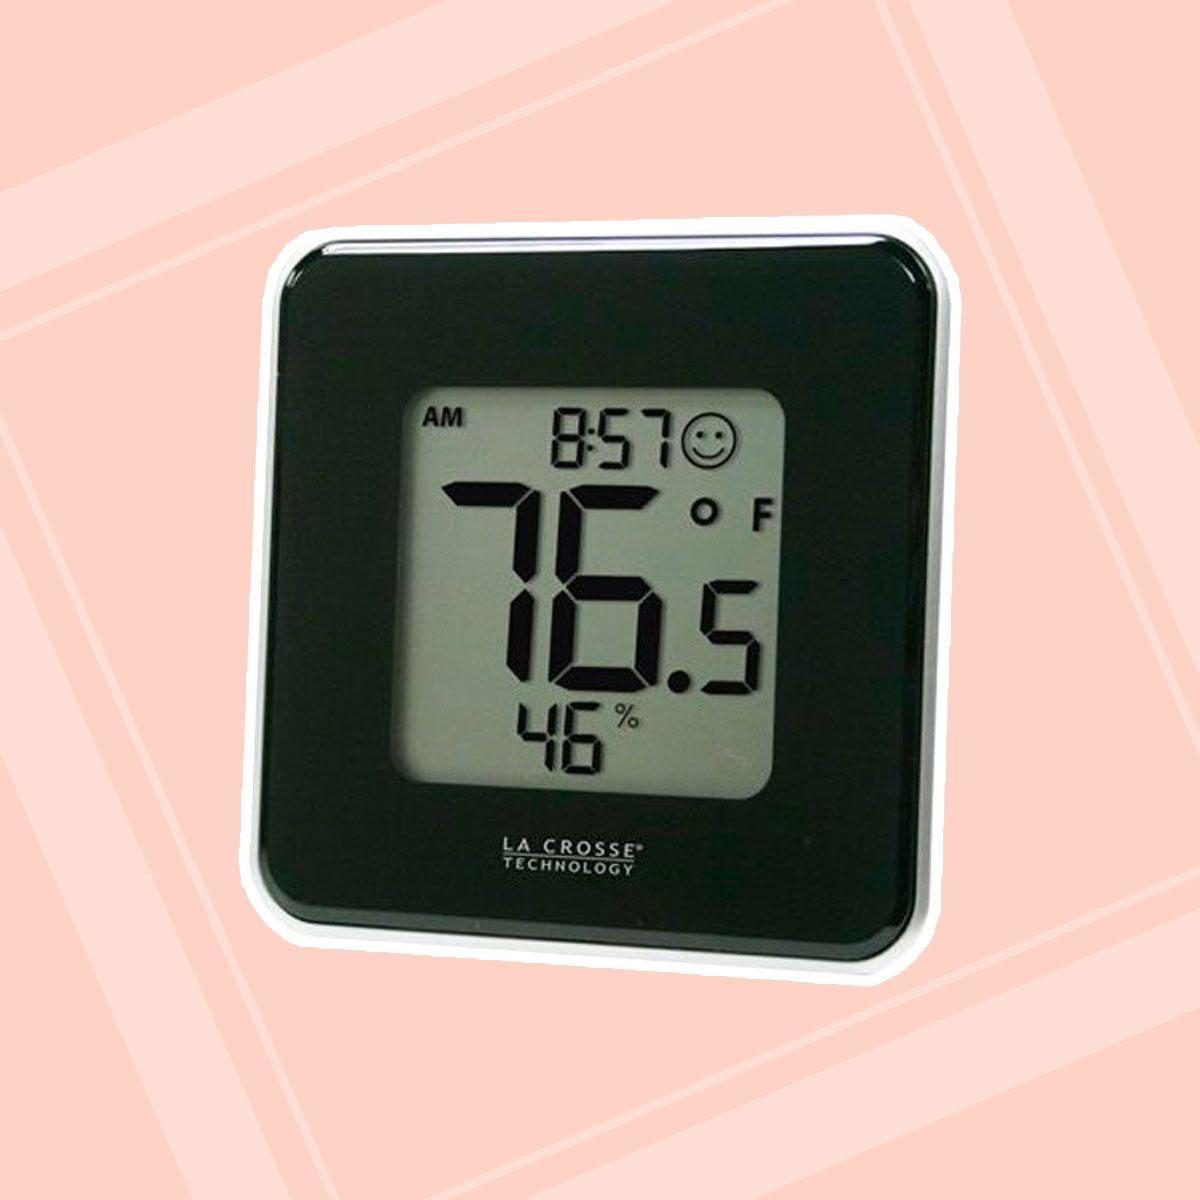 La Crosse Technology 302-604B Black Indoor Digital Thermometer & Hygrometer Station with MIN/MAX records & Comfort level icon